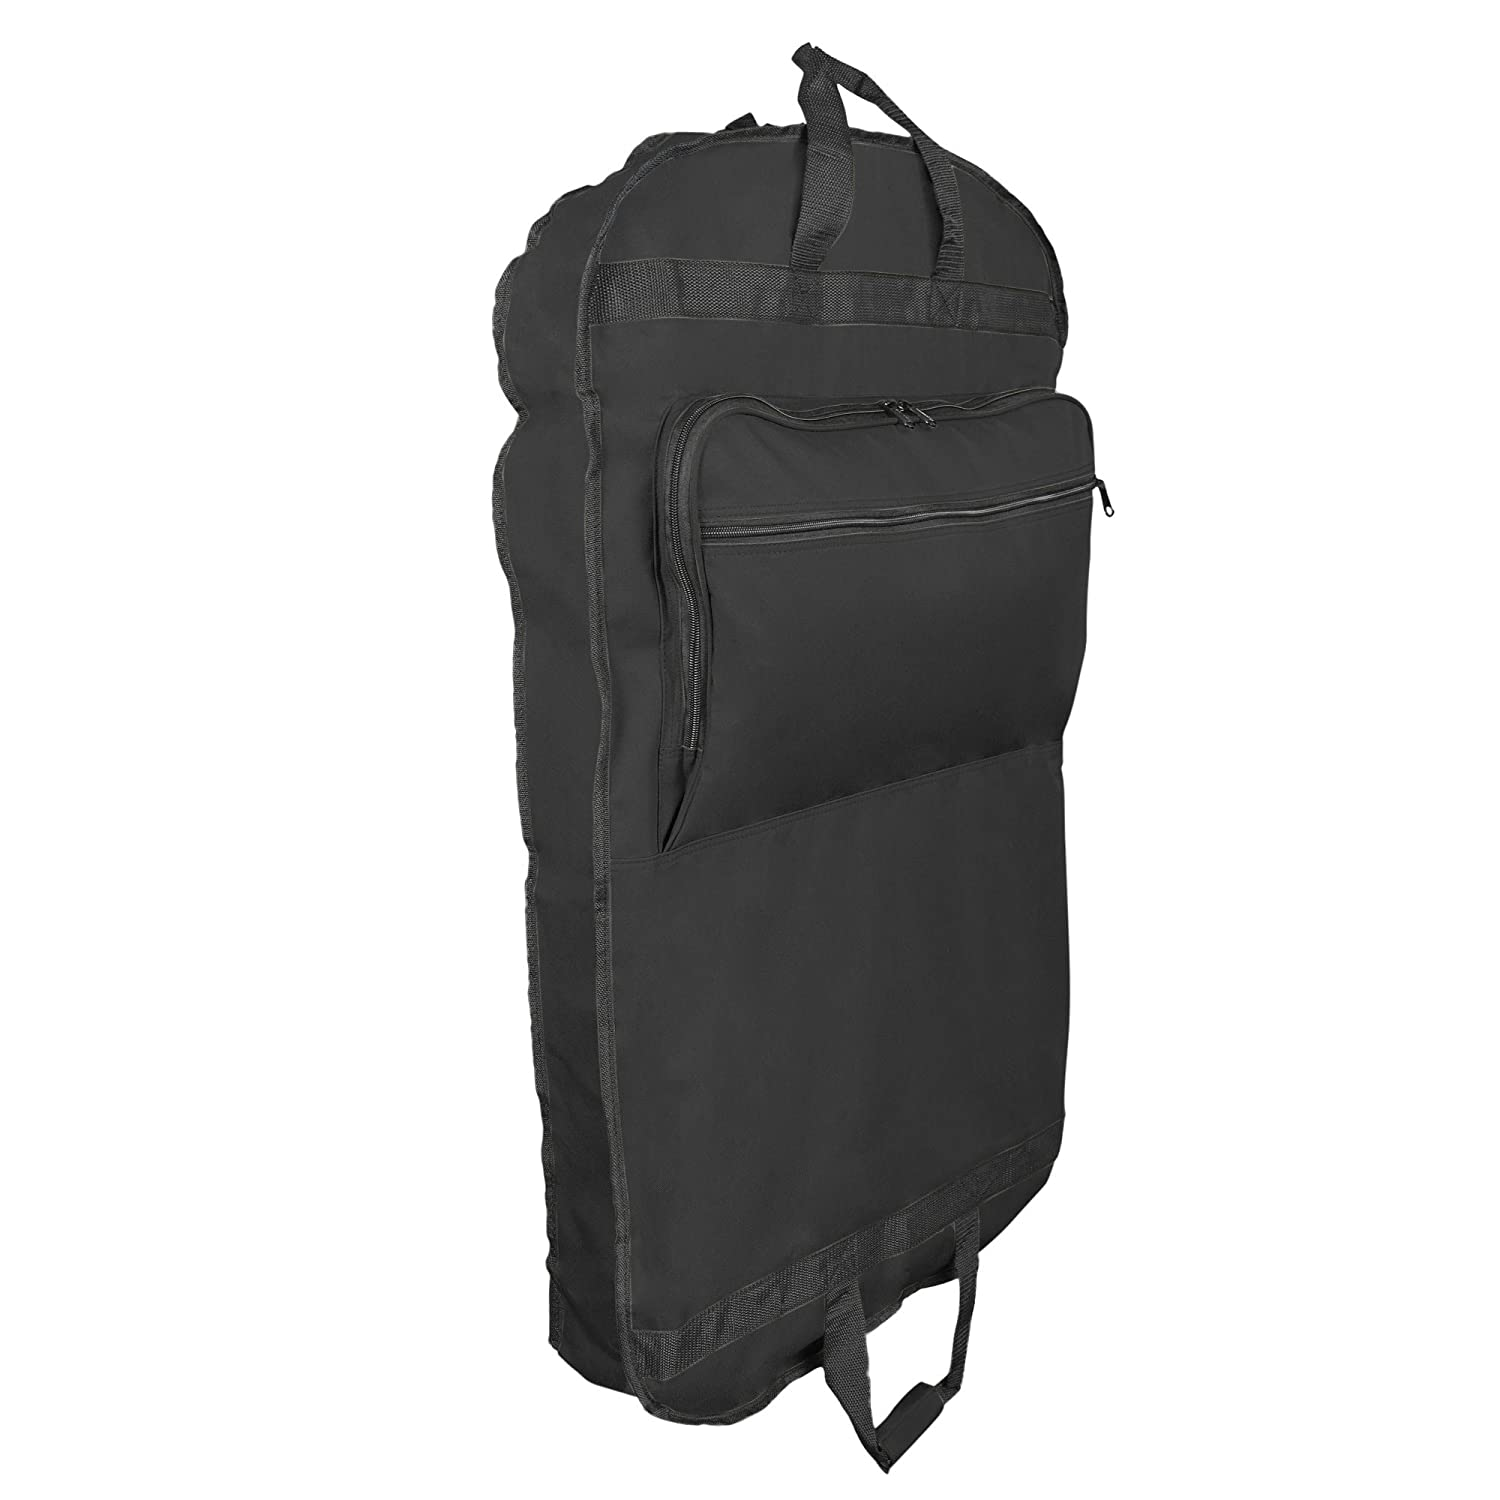 39 Business Garment Bag Cover for Suits and Dresses Clothing Foldable w Pockets DALIX GB-001-Black